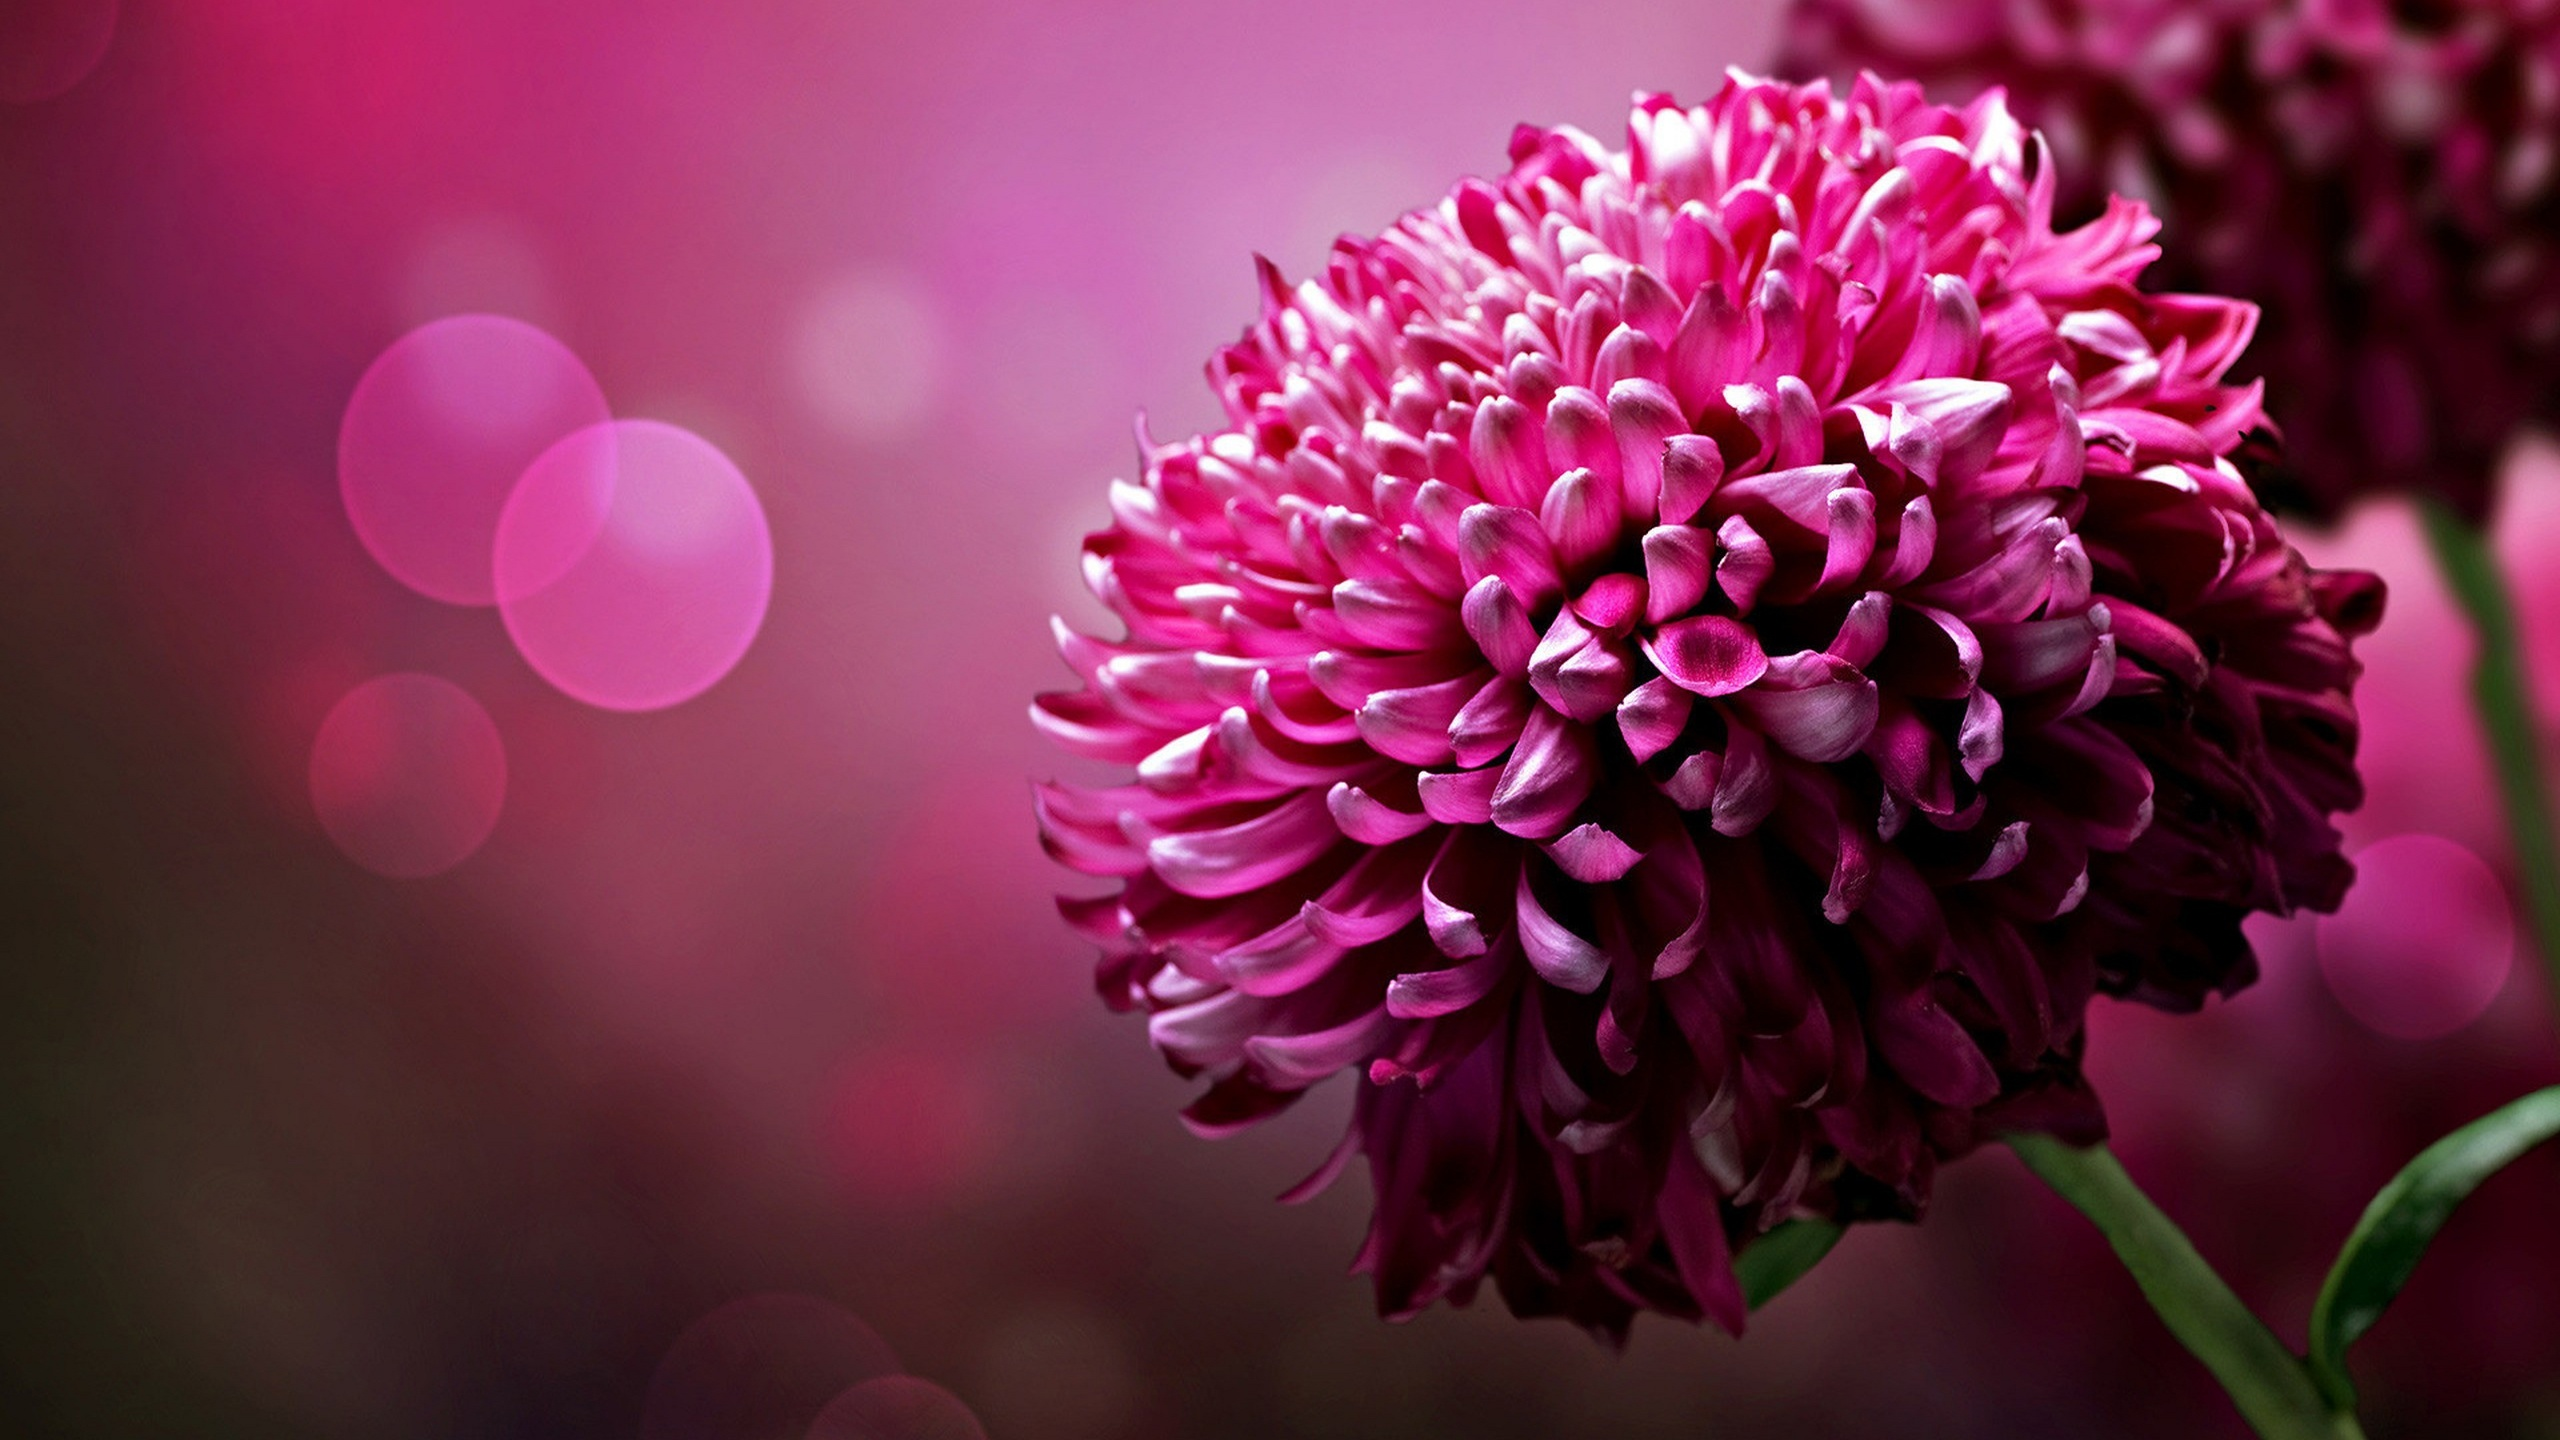 Beautiful Pink Flower Wallpaper #4859 Full HD 2560x2560 Resolution ... | Pink Flowers | Pinterest